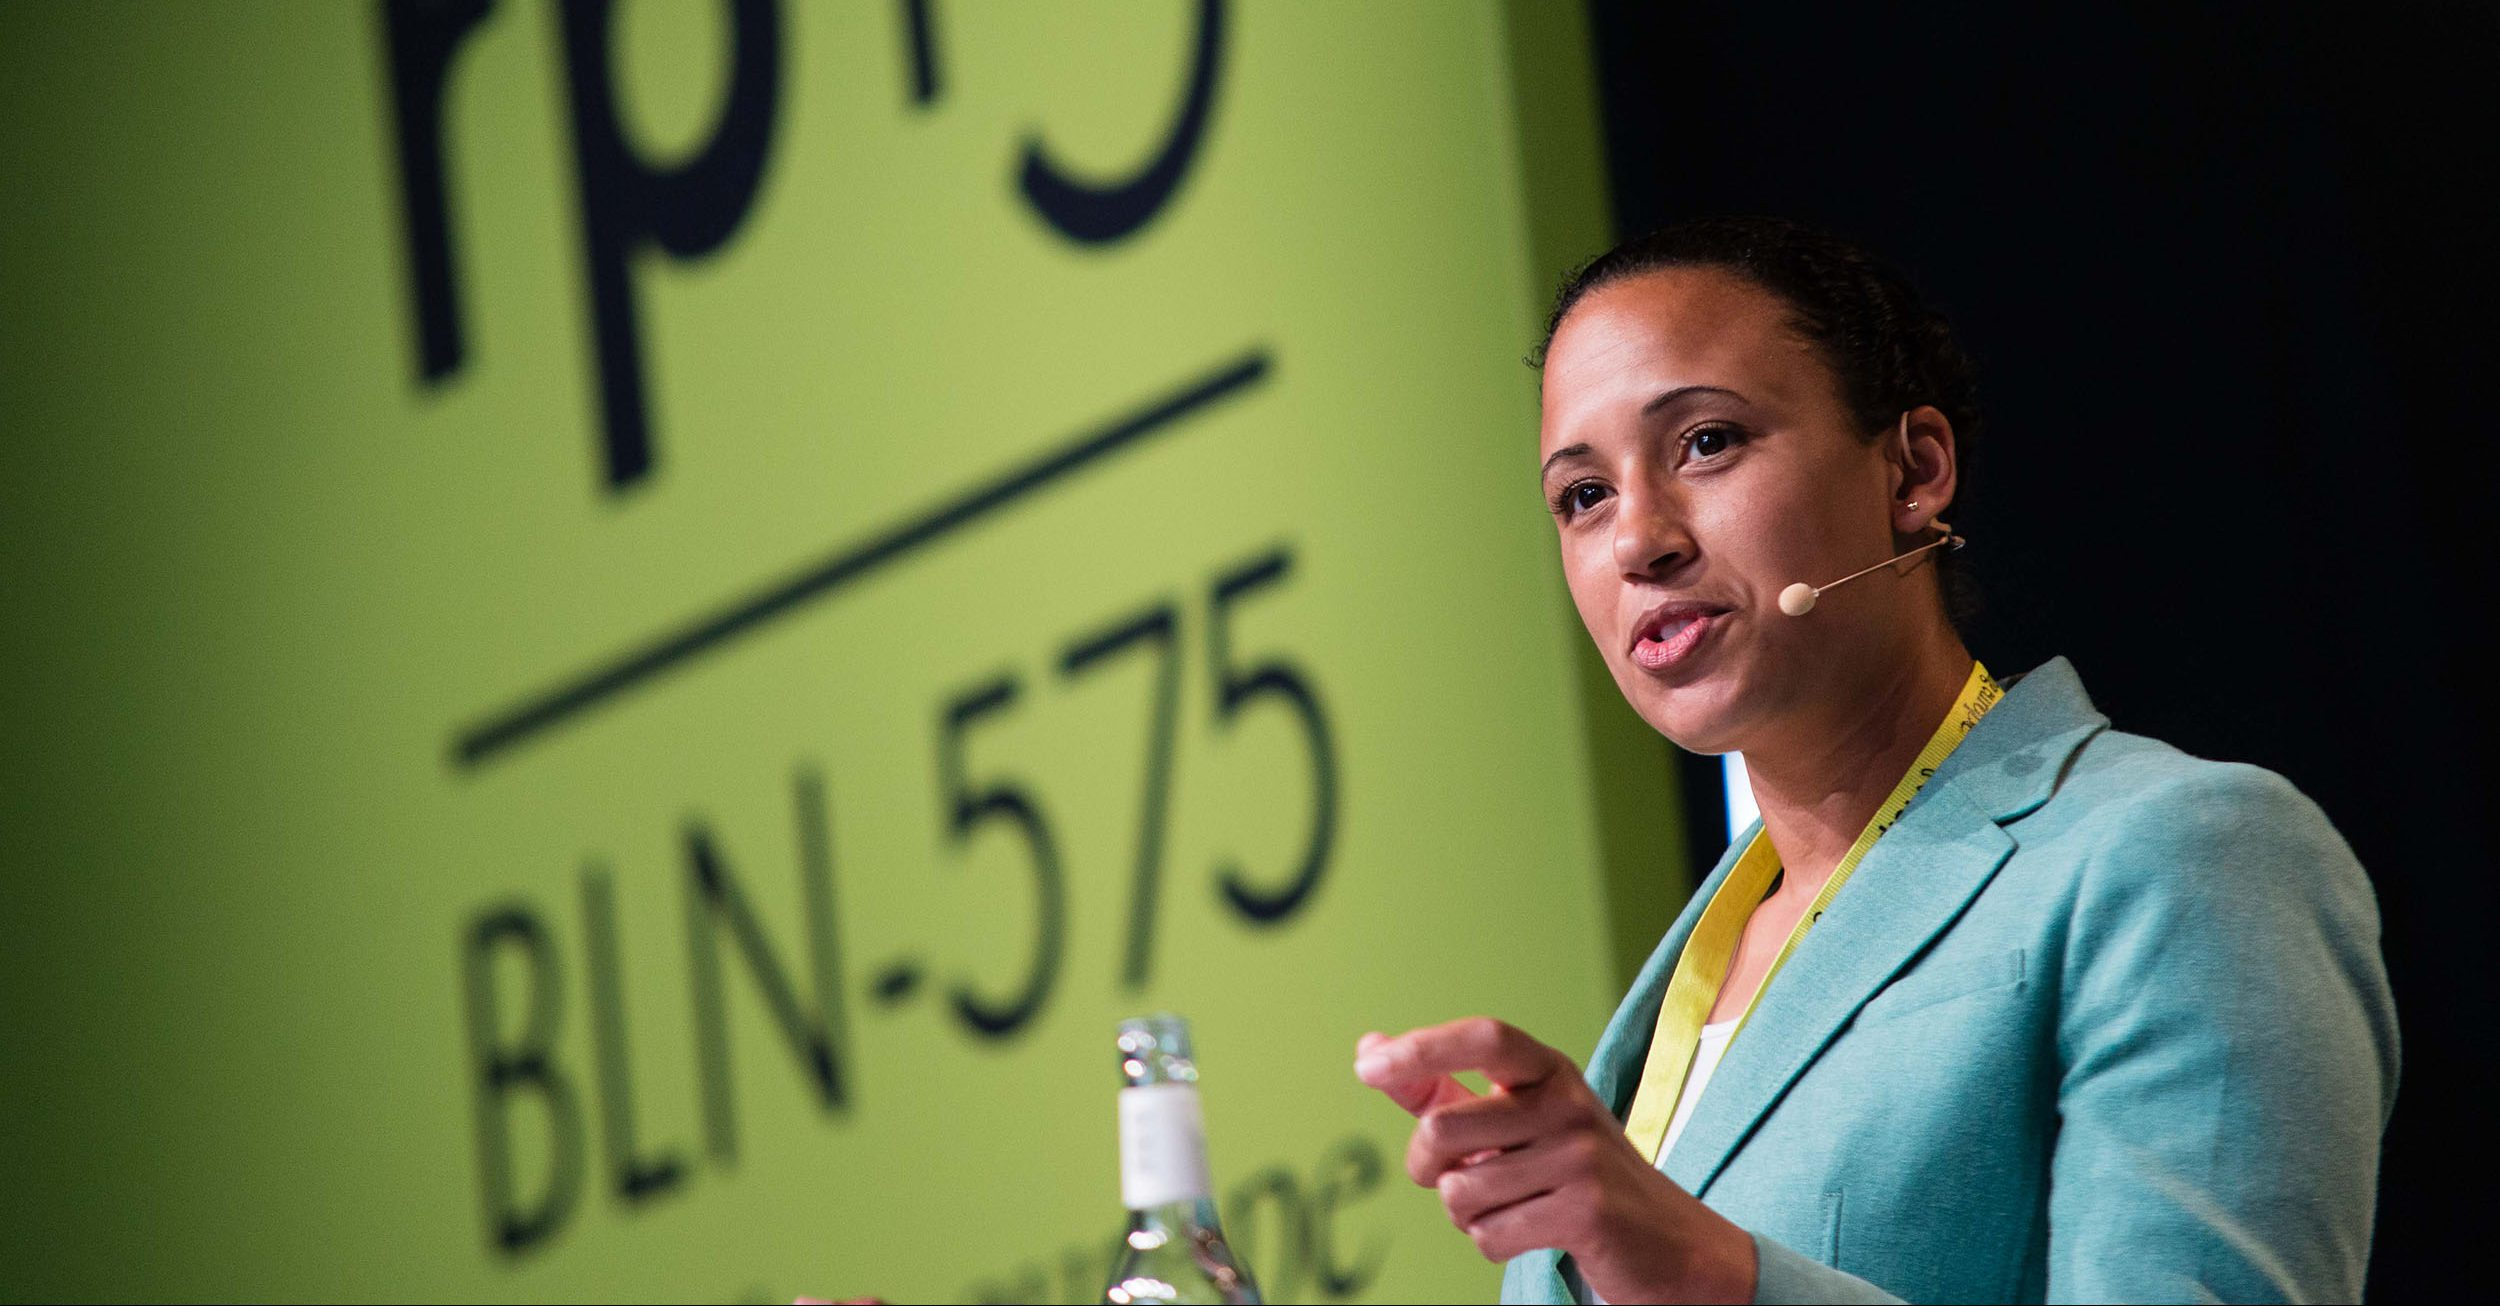 Nani Jansen speaking at re:publica 2015. Copyright: re:publica/Gregor Fischer